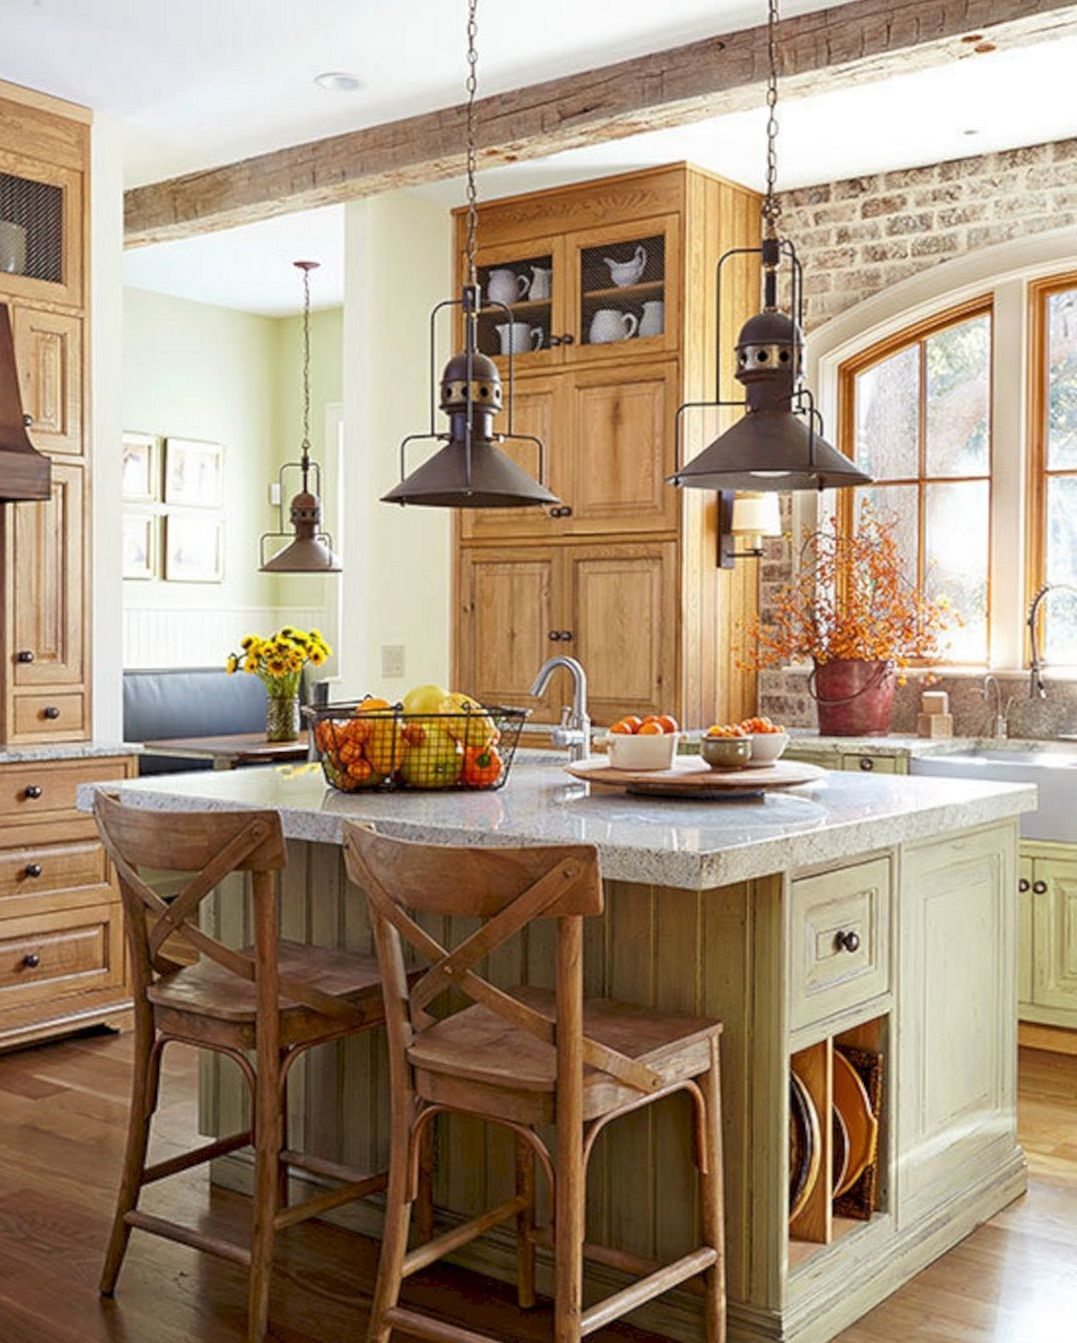 Inspiring 24 Farmhouse Rustic Small Kitchen Design And Decor Ideas Extraordinary Small Kitchen And Dining Design 2018